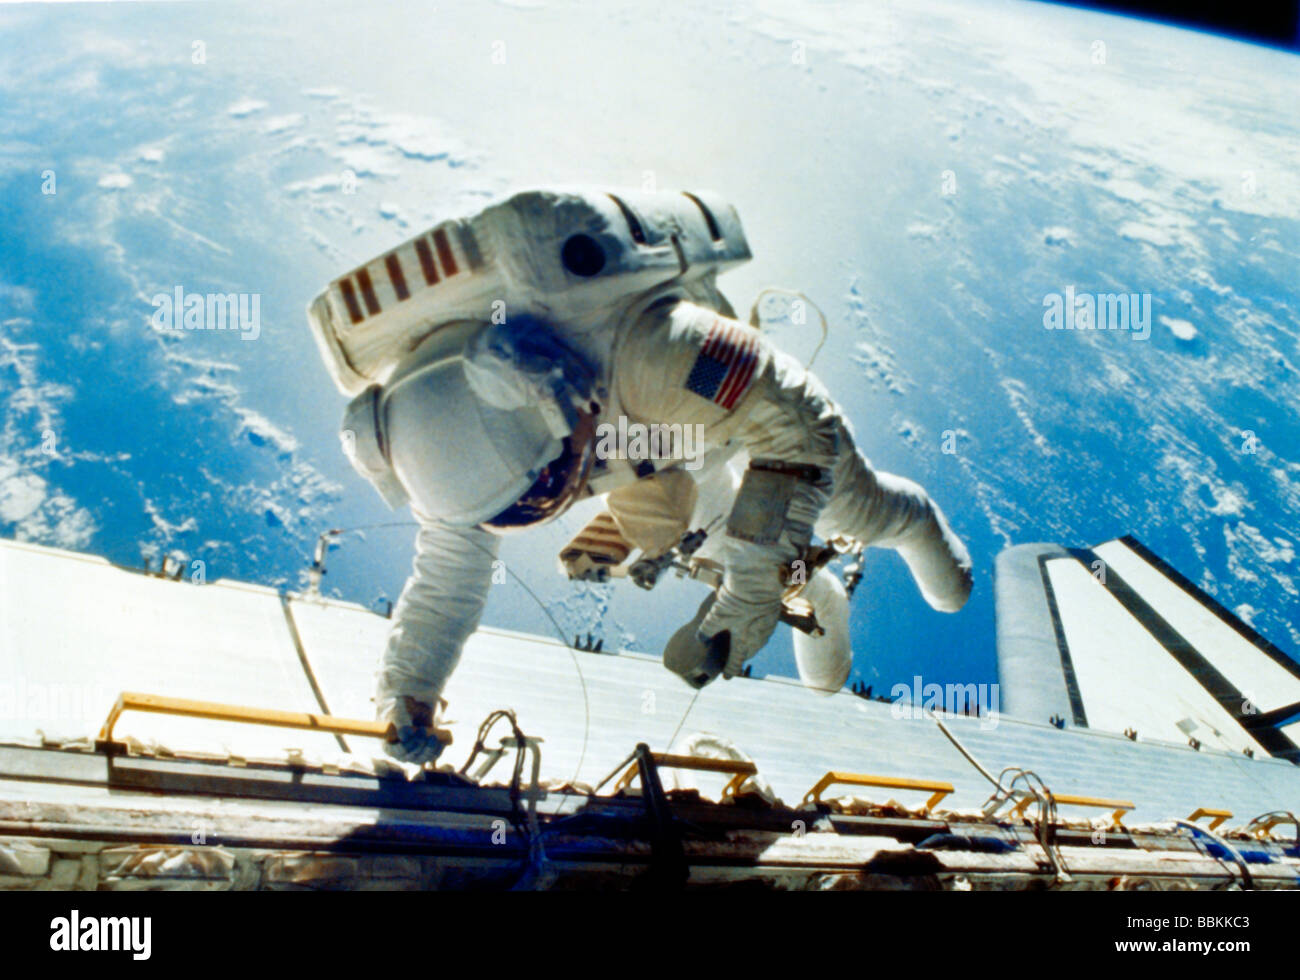 astronaut working in space - photo #14